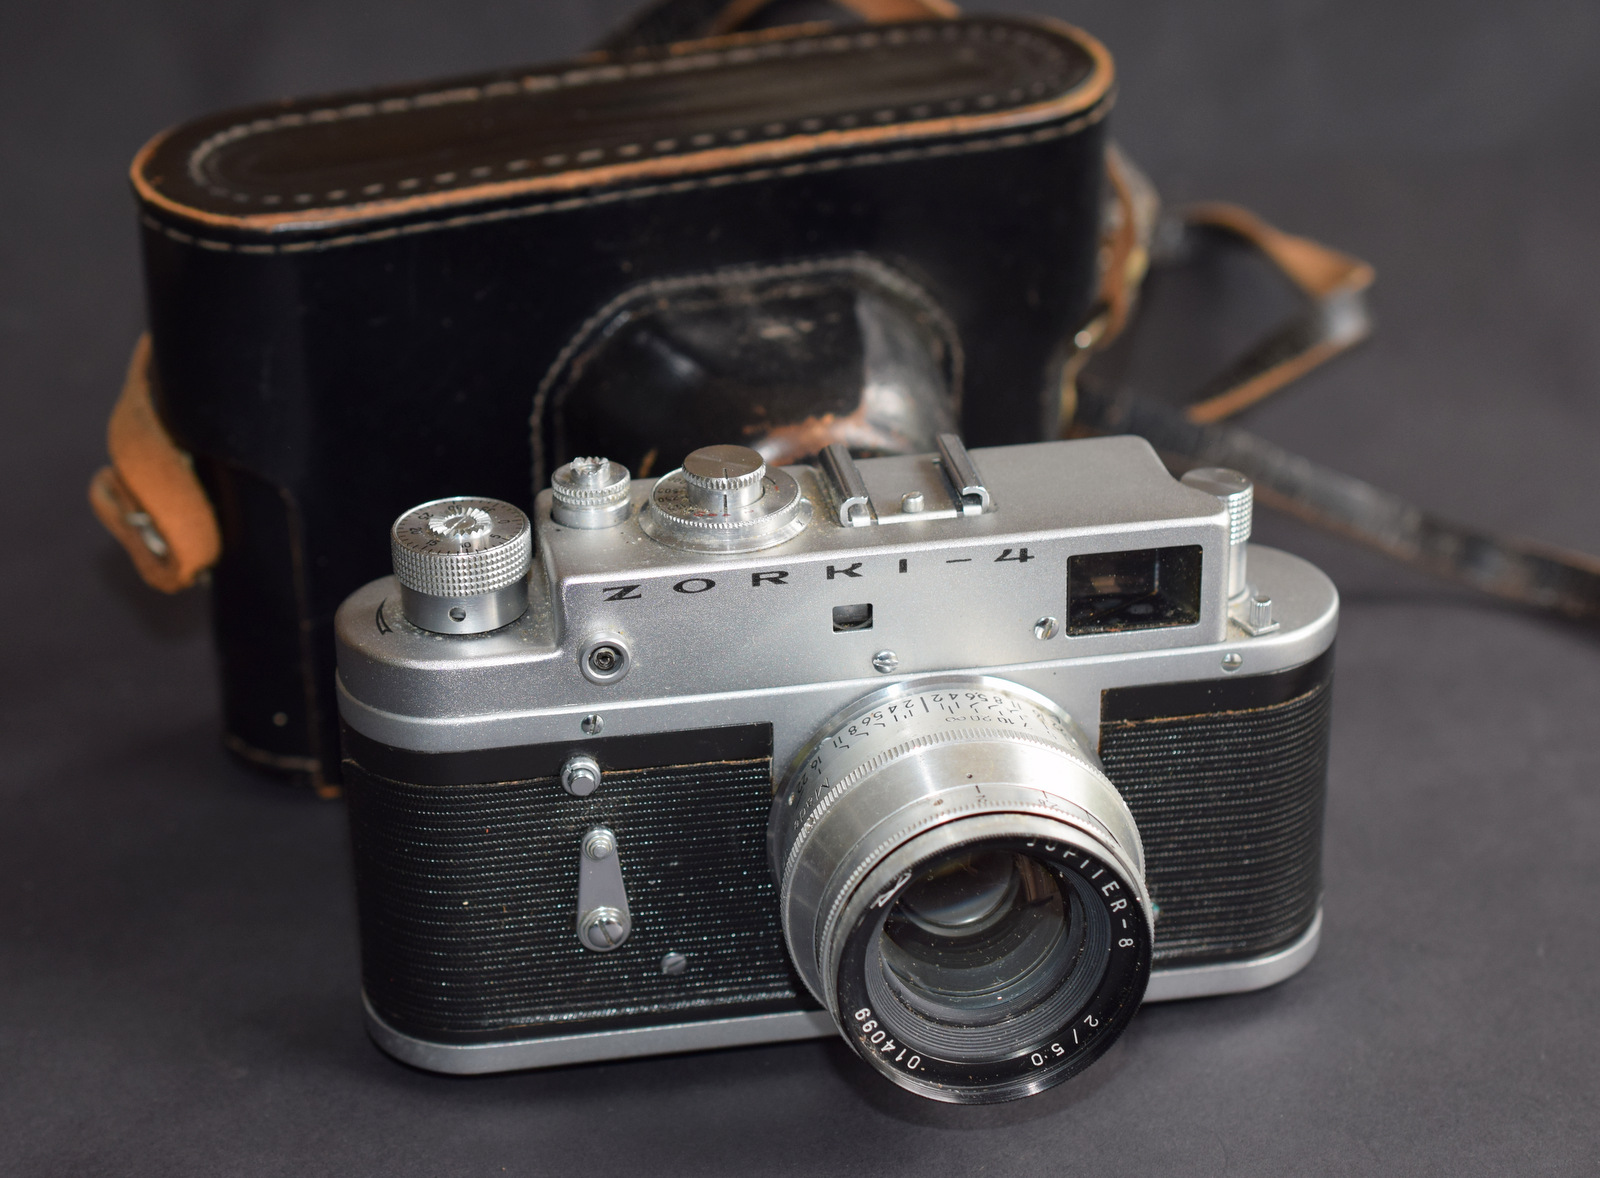 Lot 3 - Vintage Zorki 4 Rangefinder Film Camera With Jupiter 8 2/50